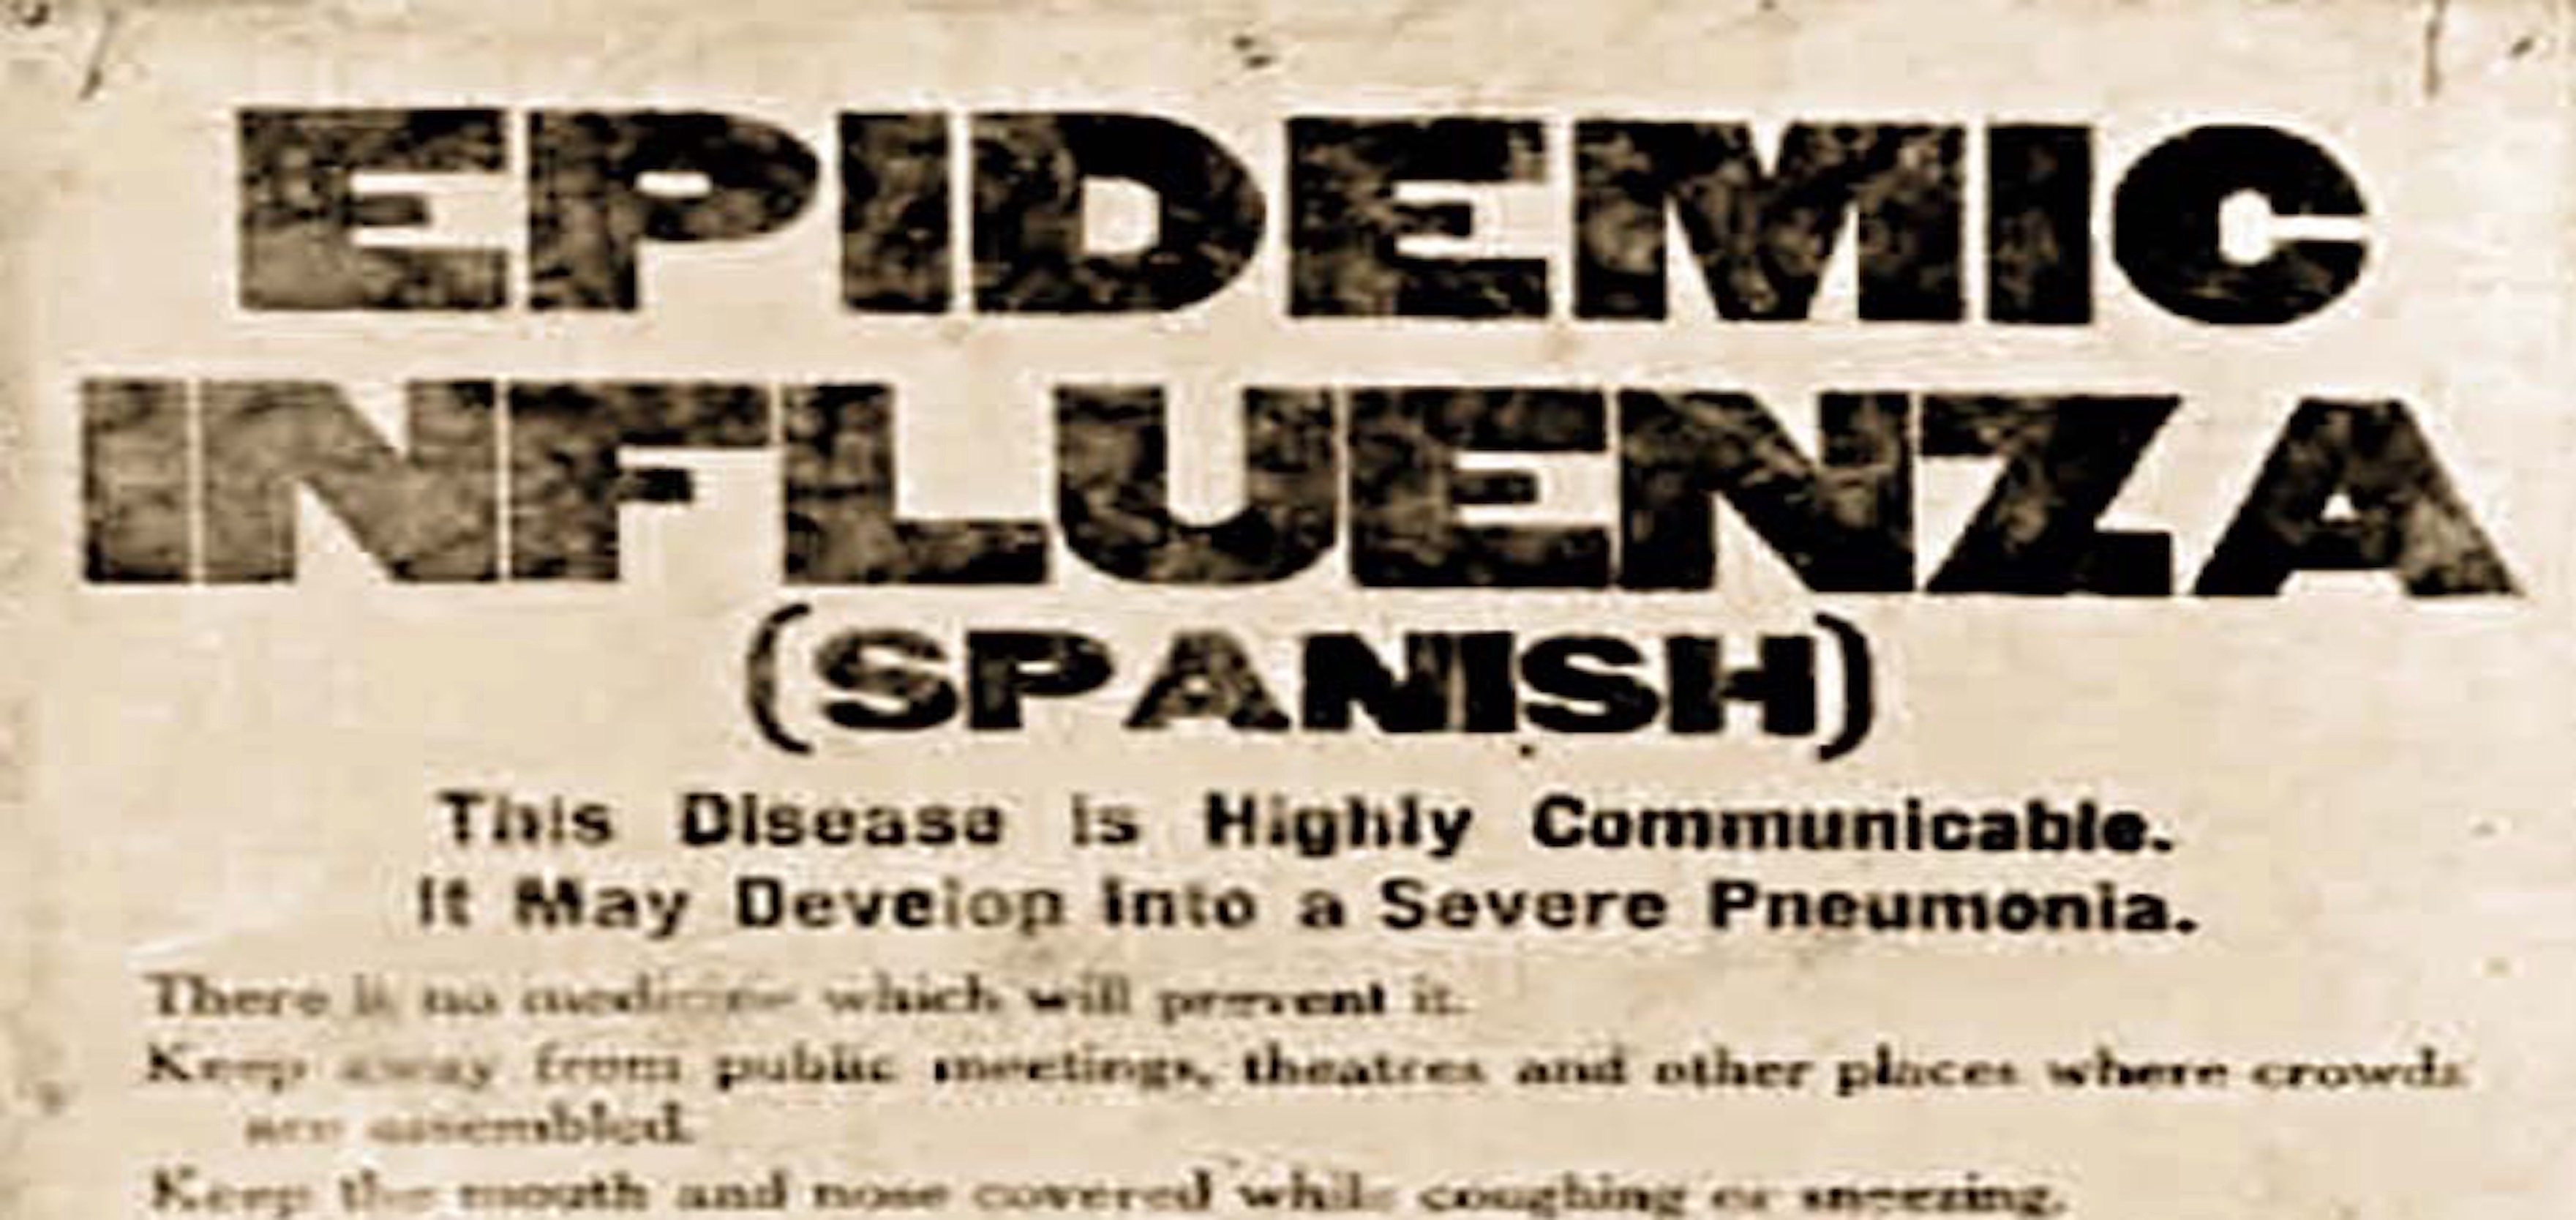 In 1918 and 2020, Race Colors America's Response to Epidemics